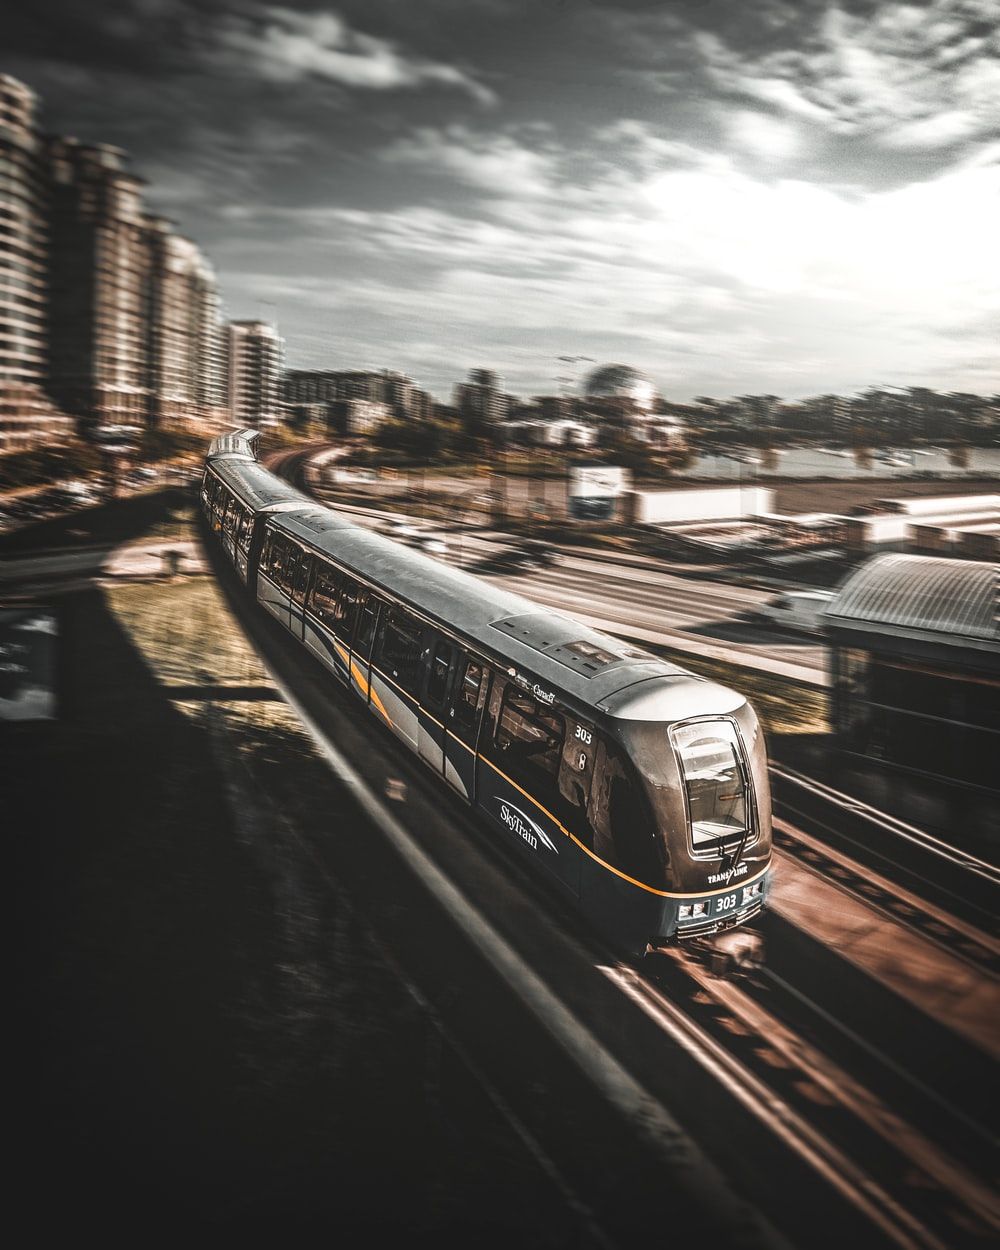 train running on railroad during daytime timelapse photography